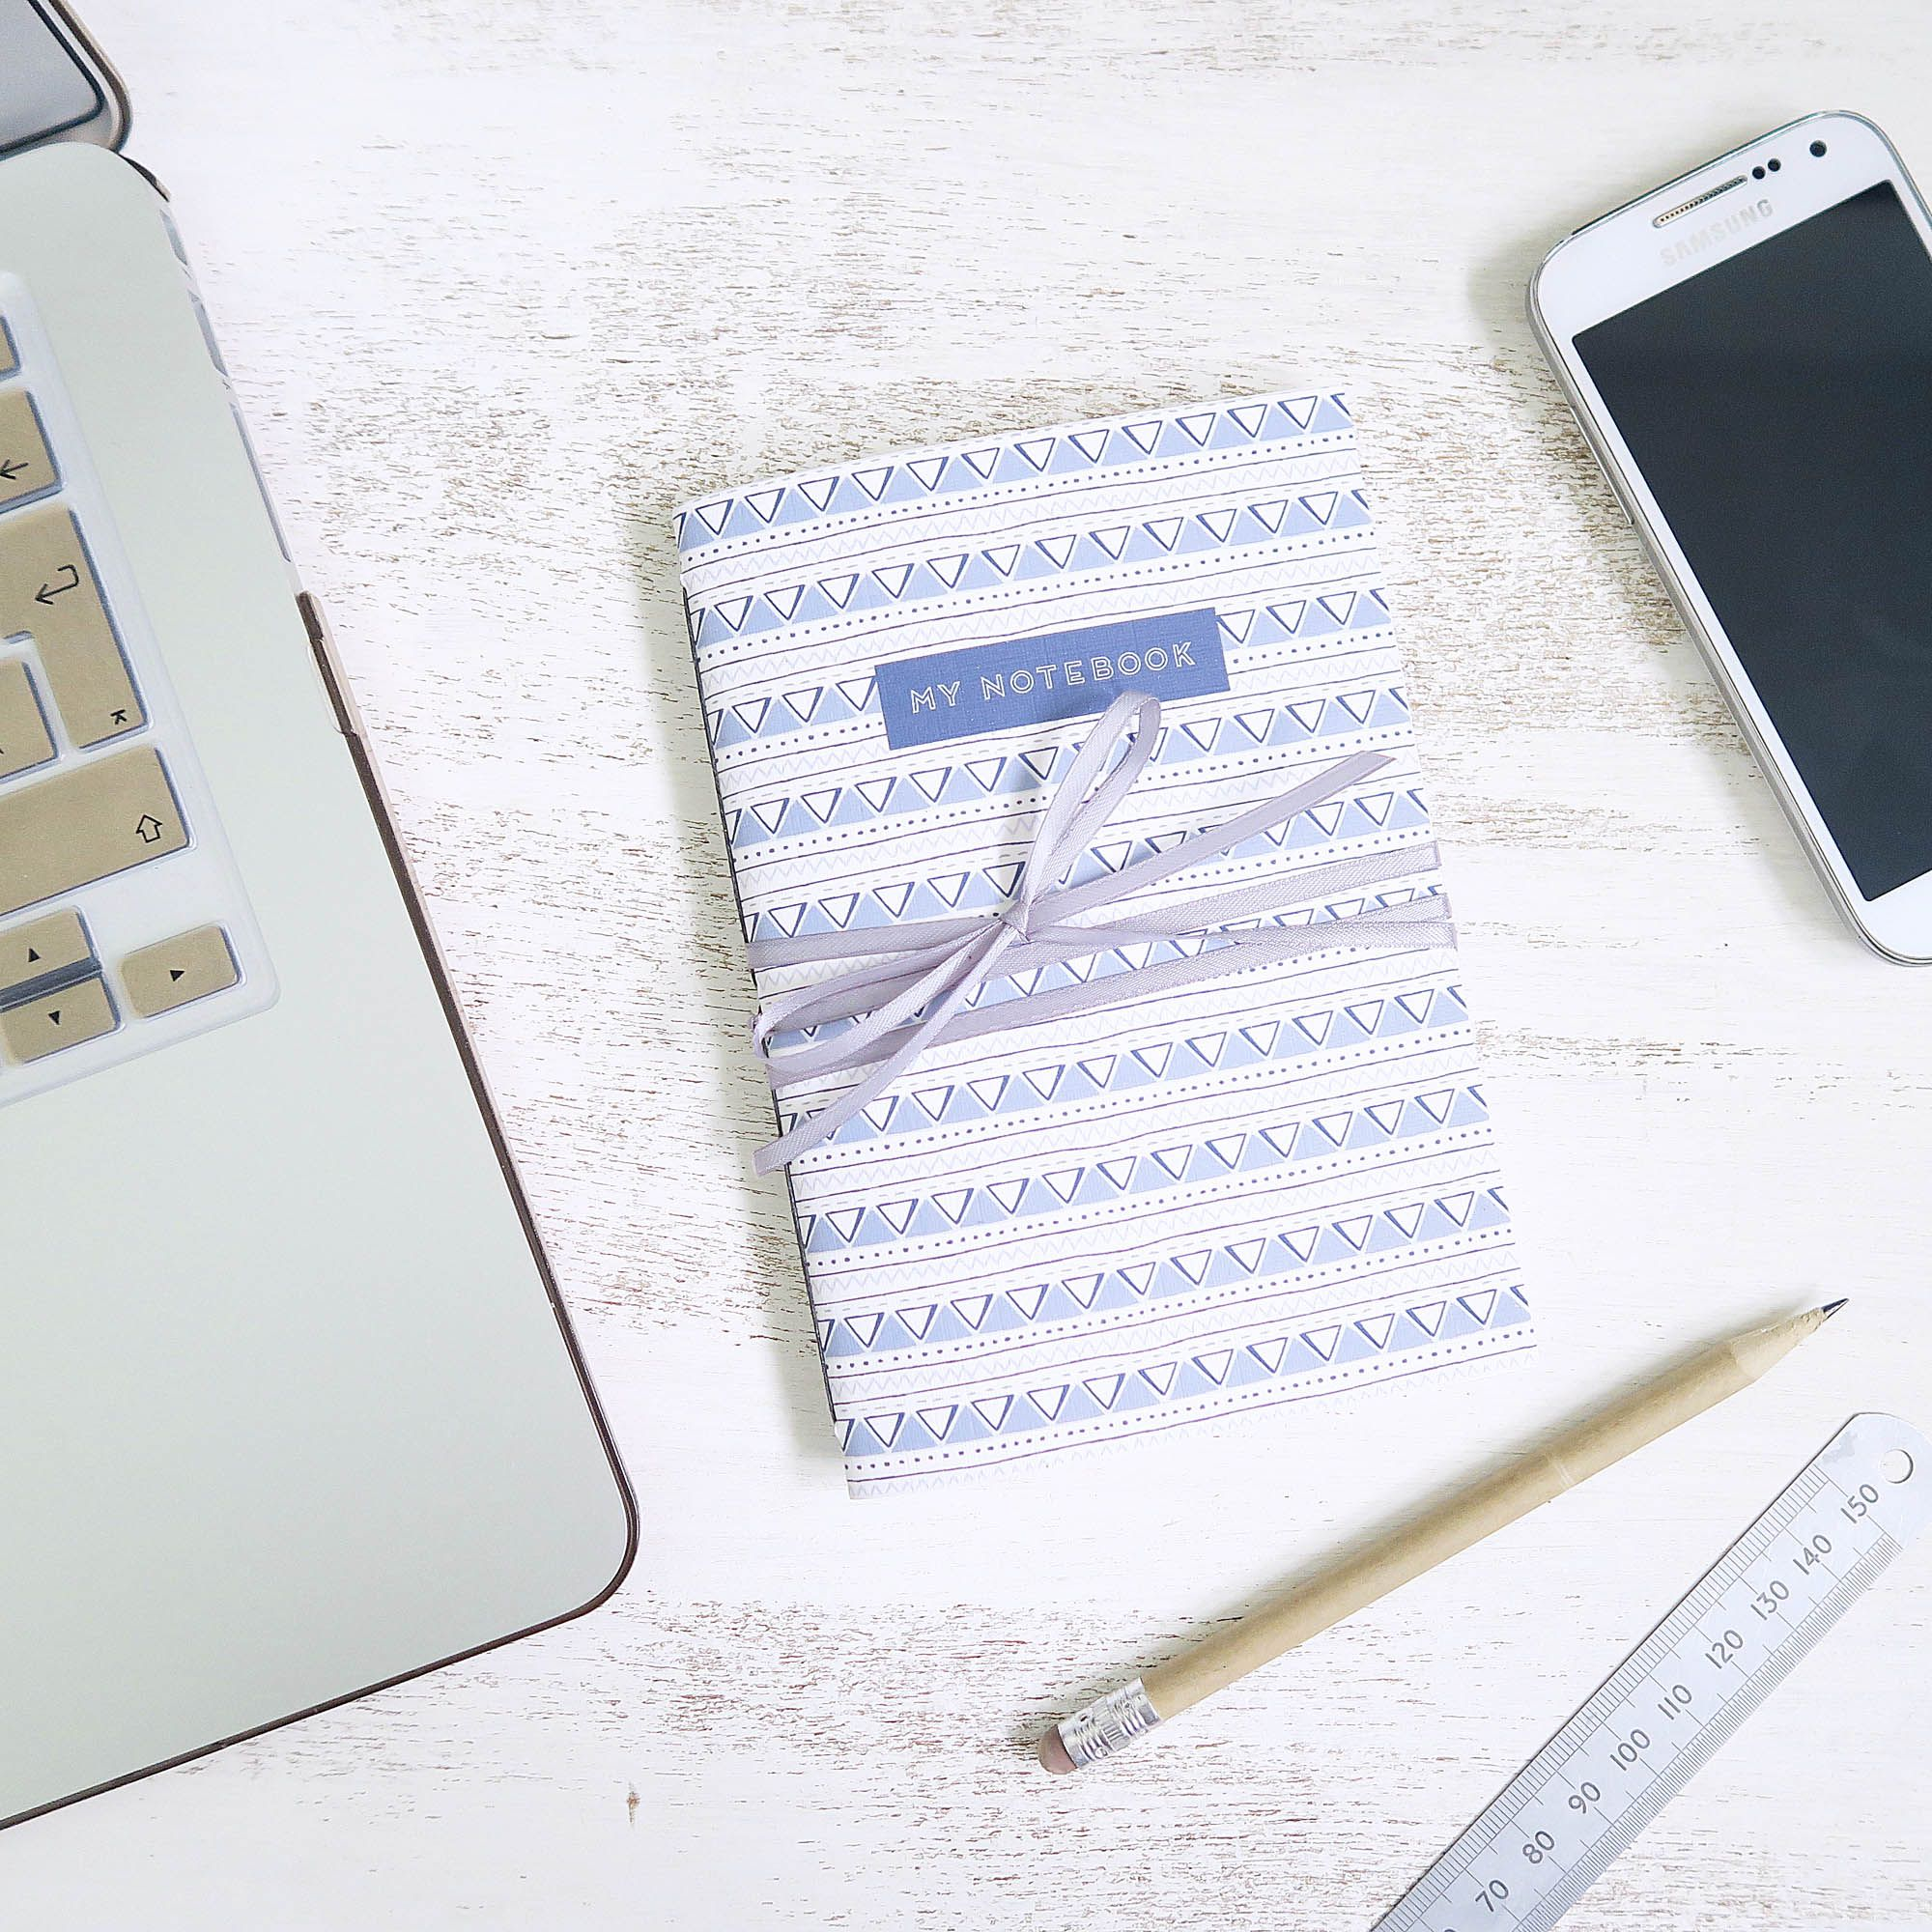 Free Printable Notebook Covers To Bind Your Own Notebook